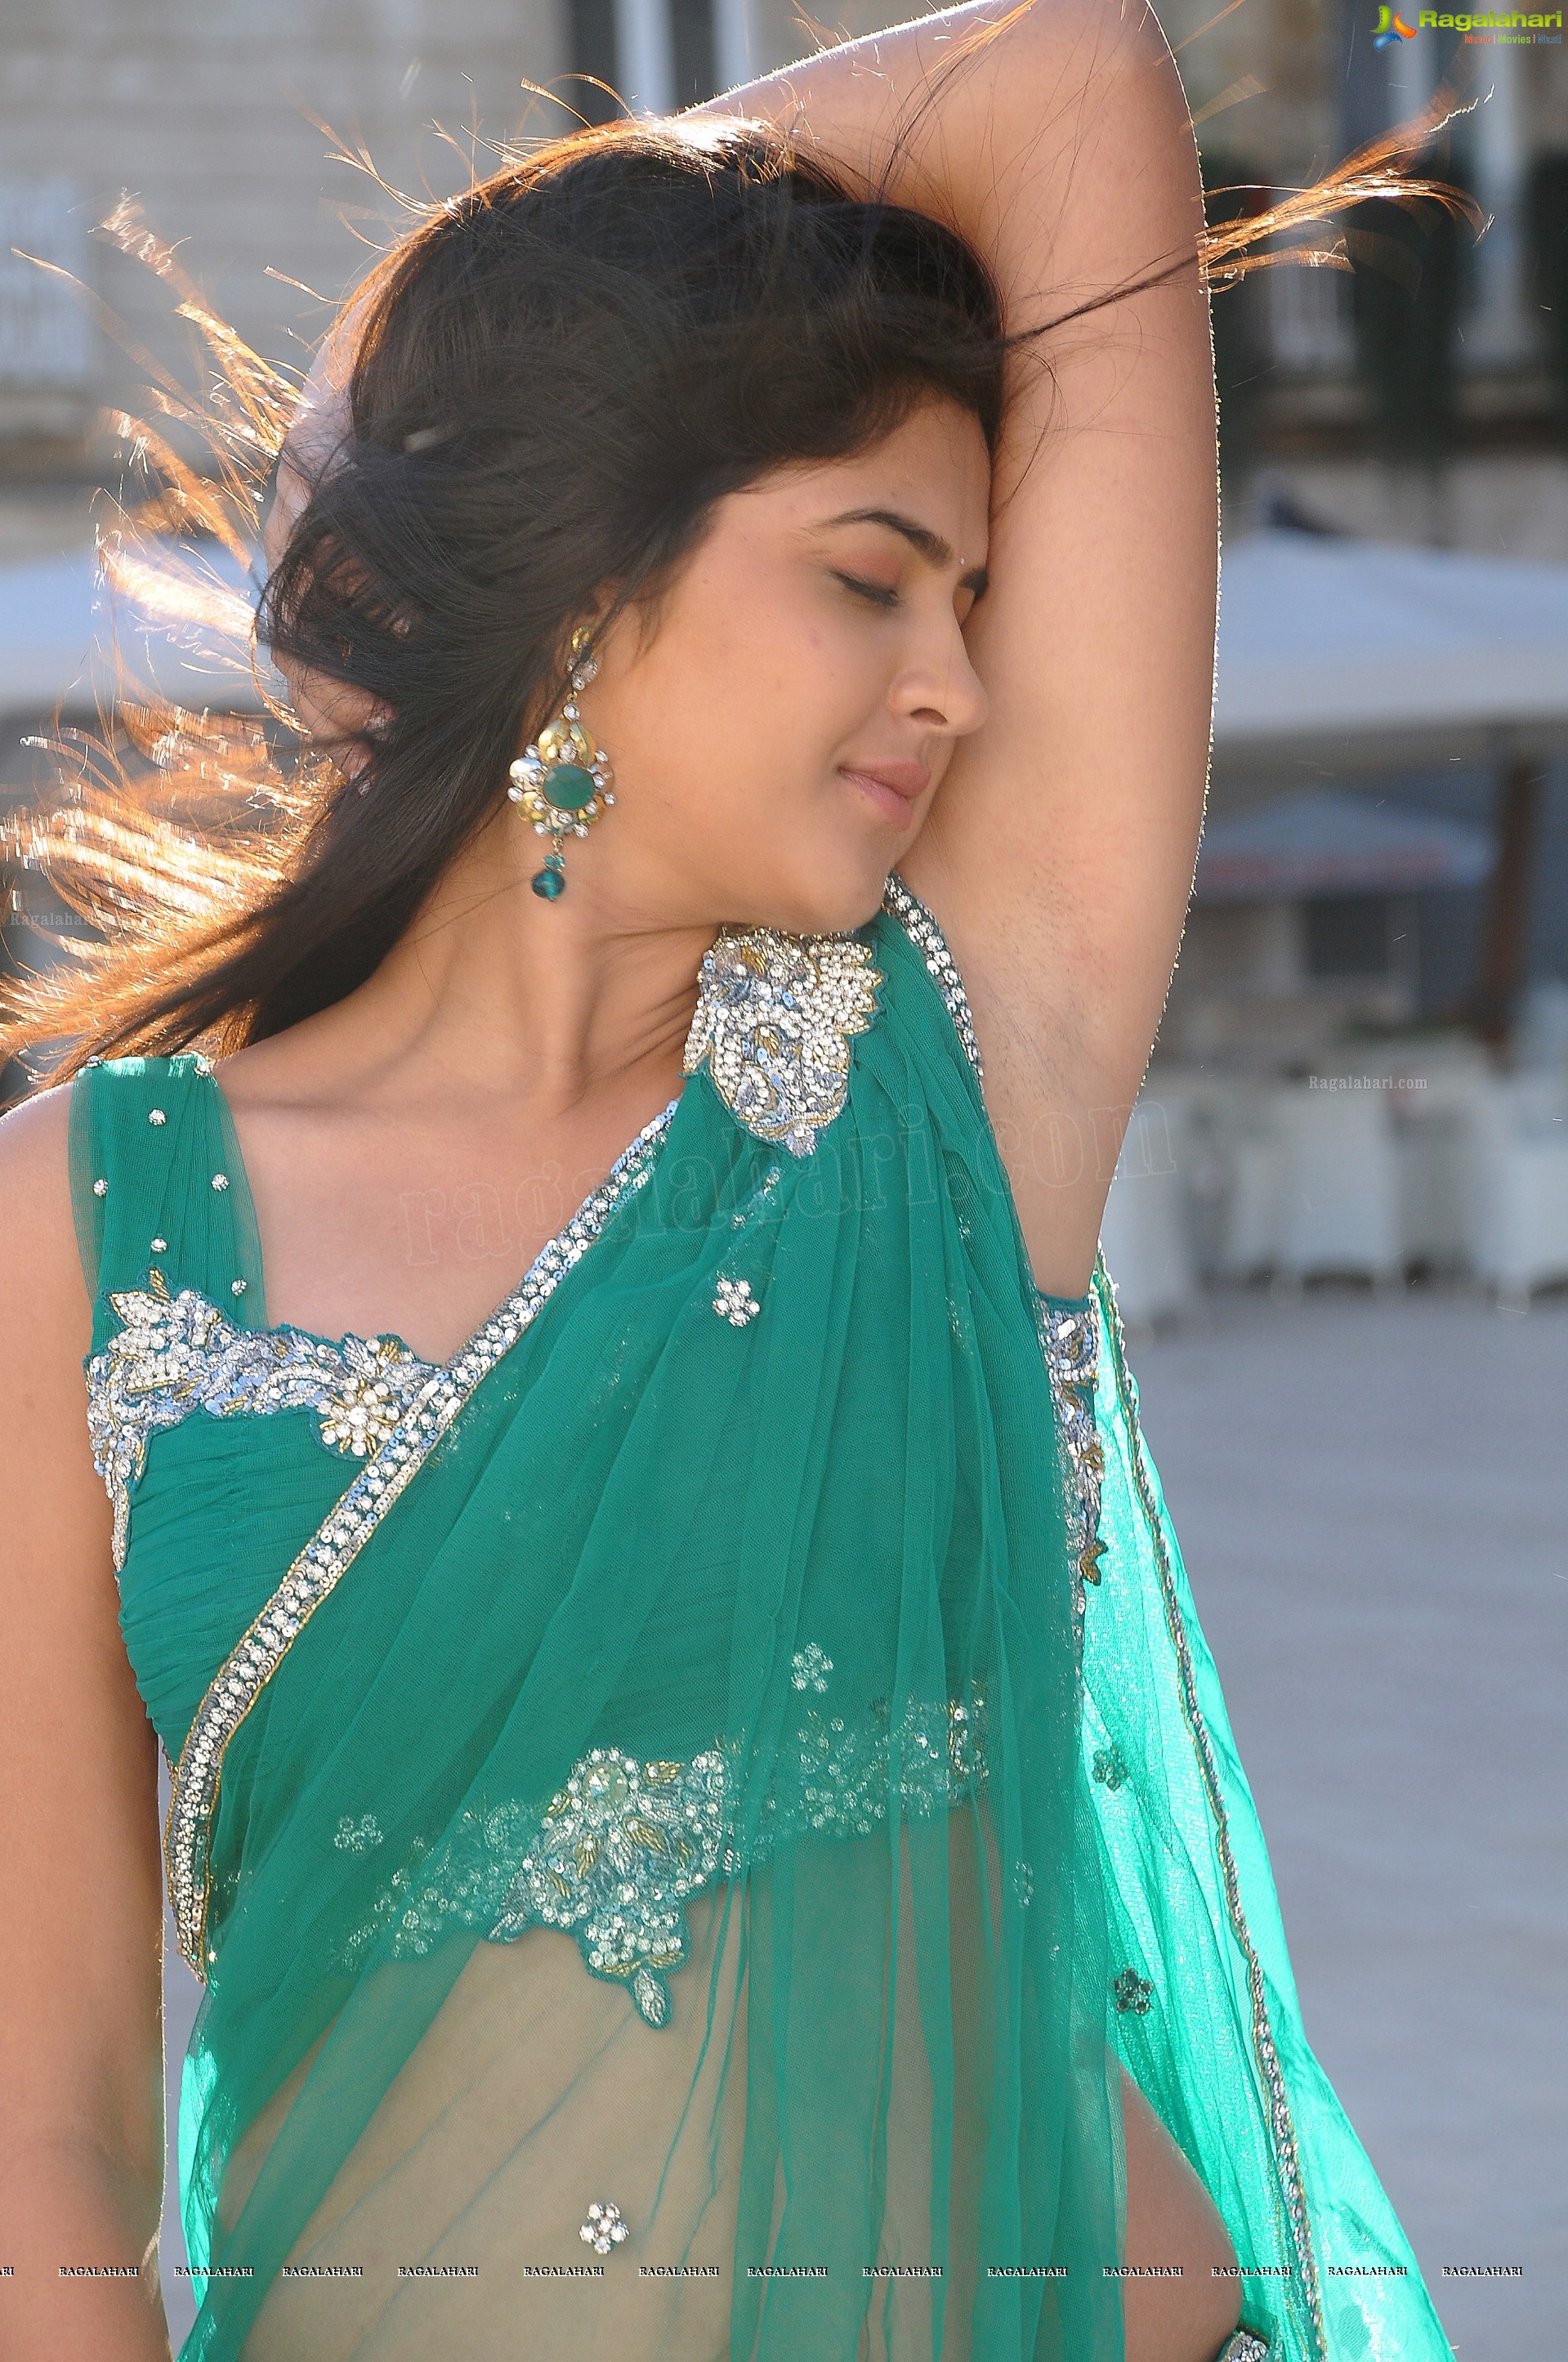 deeksha seth (high definition) image 23 | telugu heroines photos